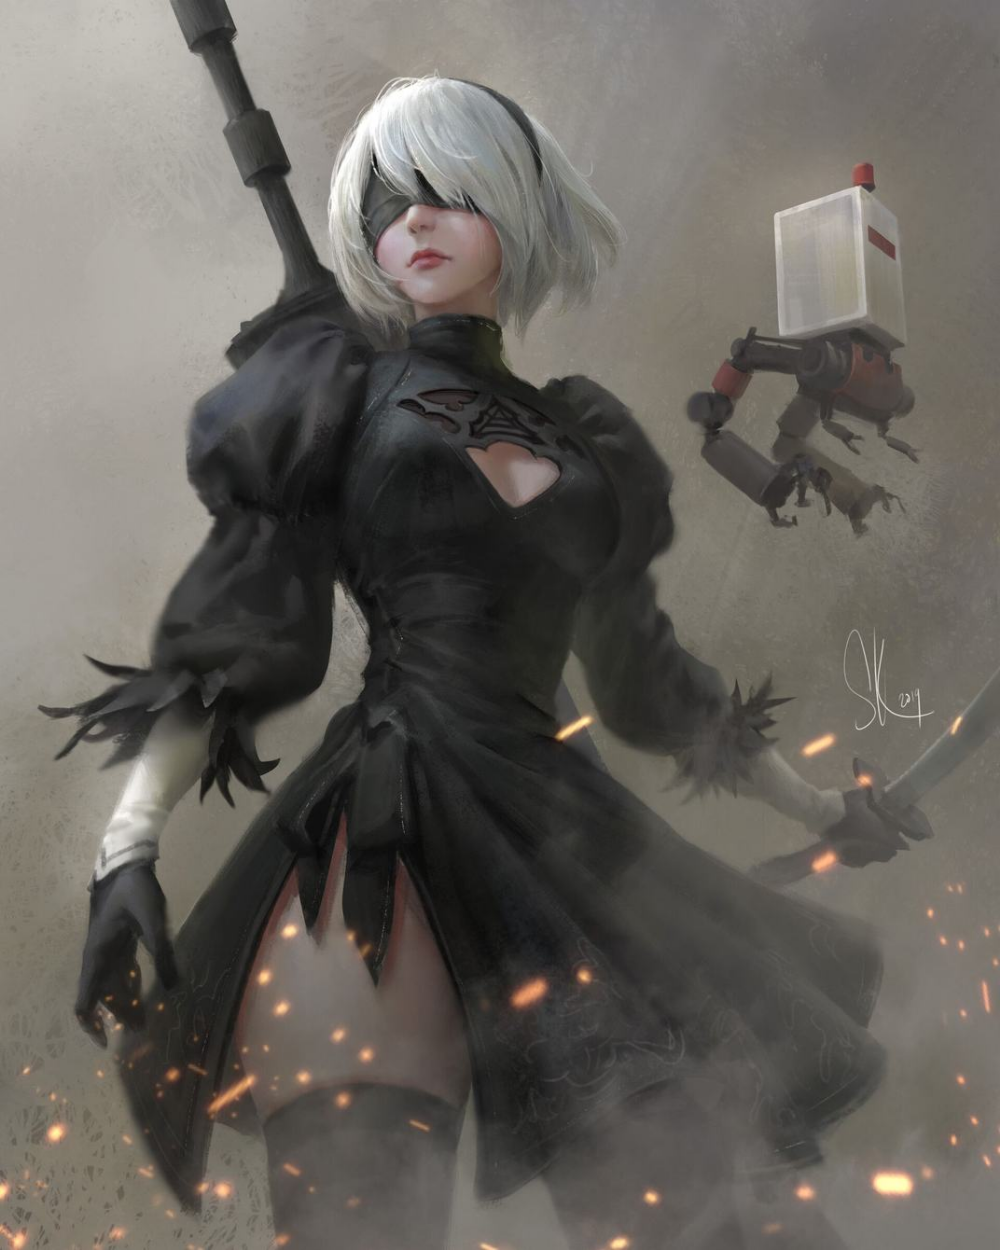 Pin On Nier Automata Pictures